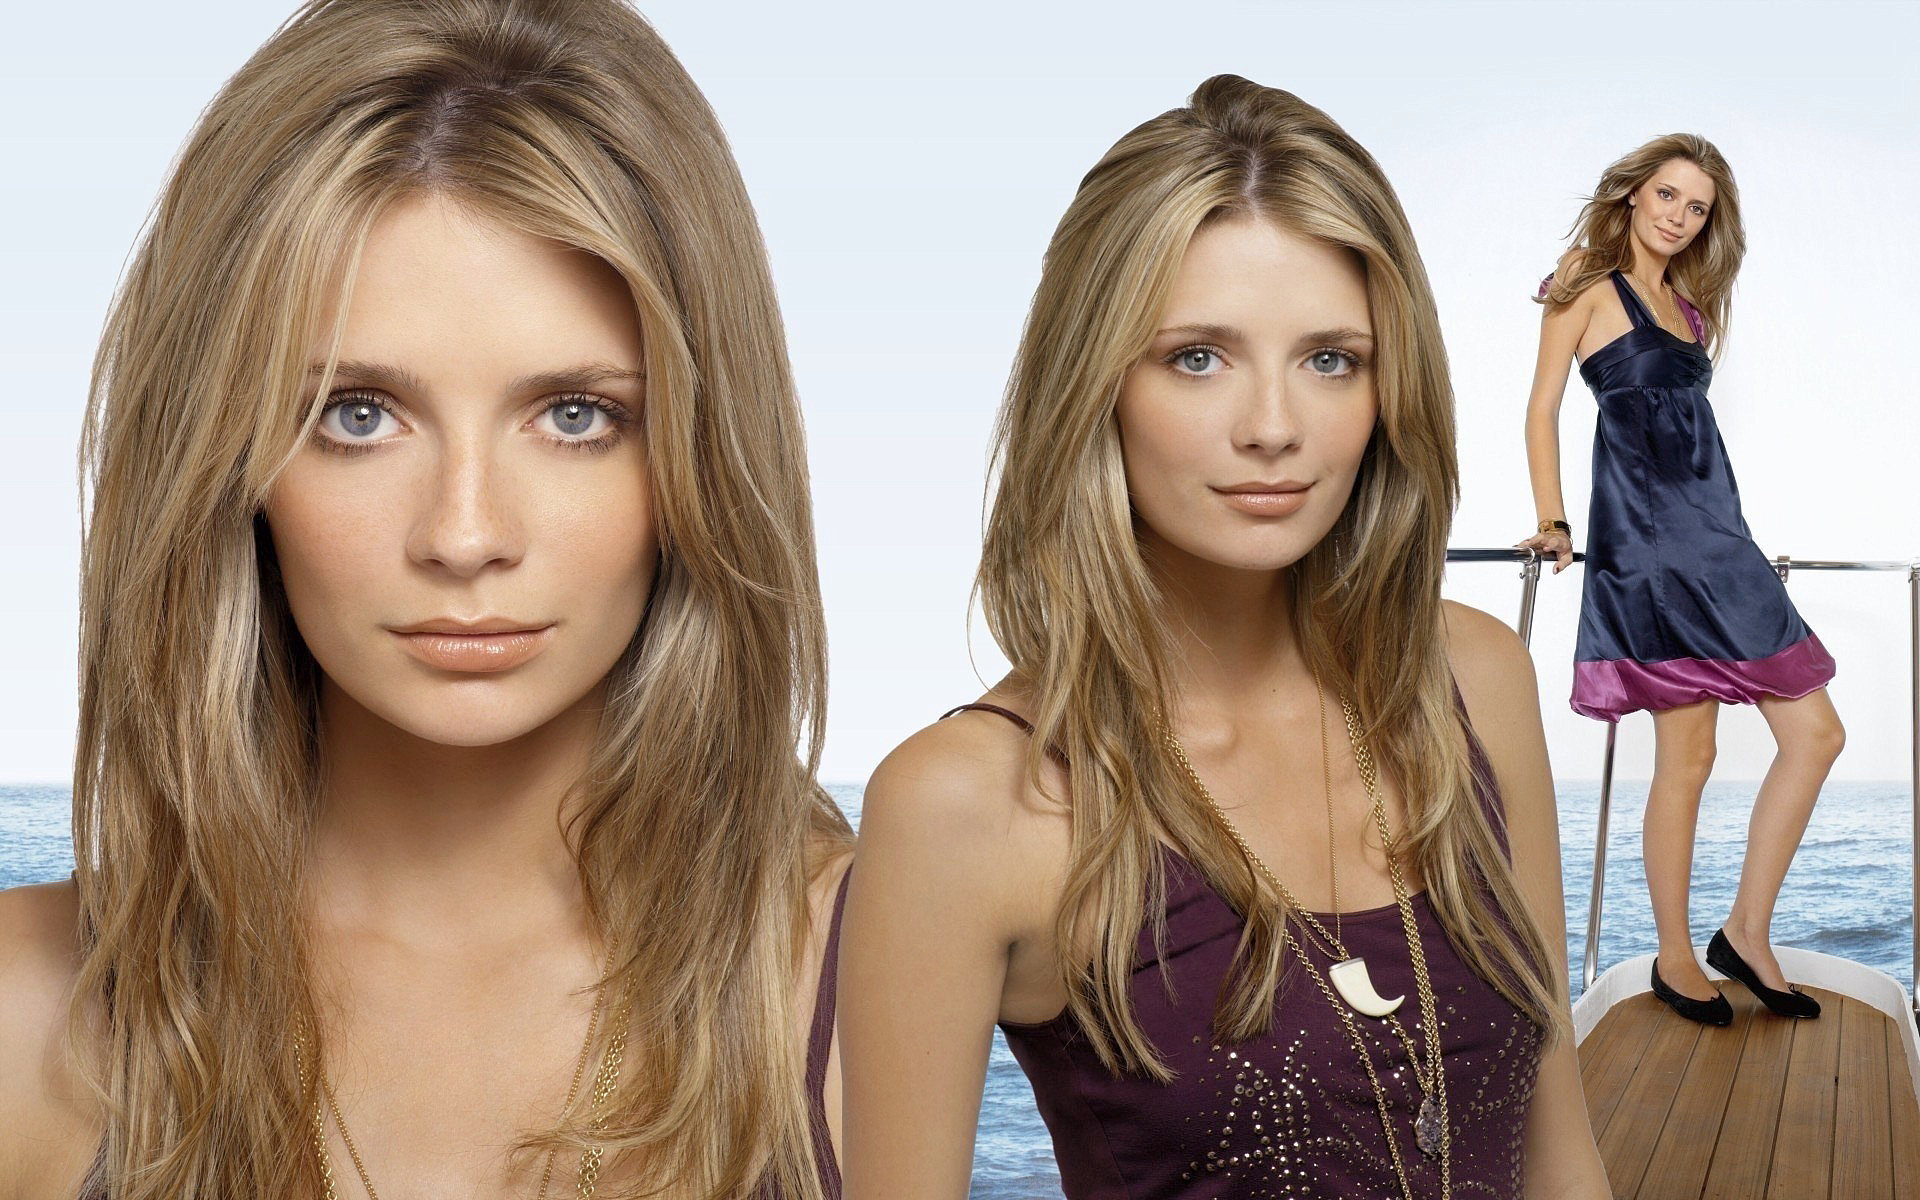 Awesome Mischa Barton free wallpaper ID:307455 for hd 1920x1200 computer